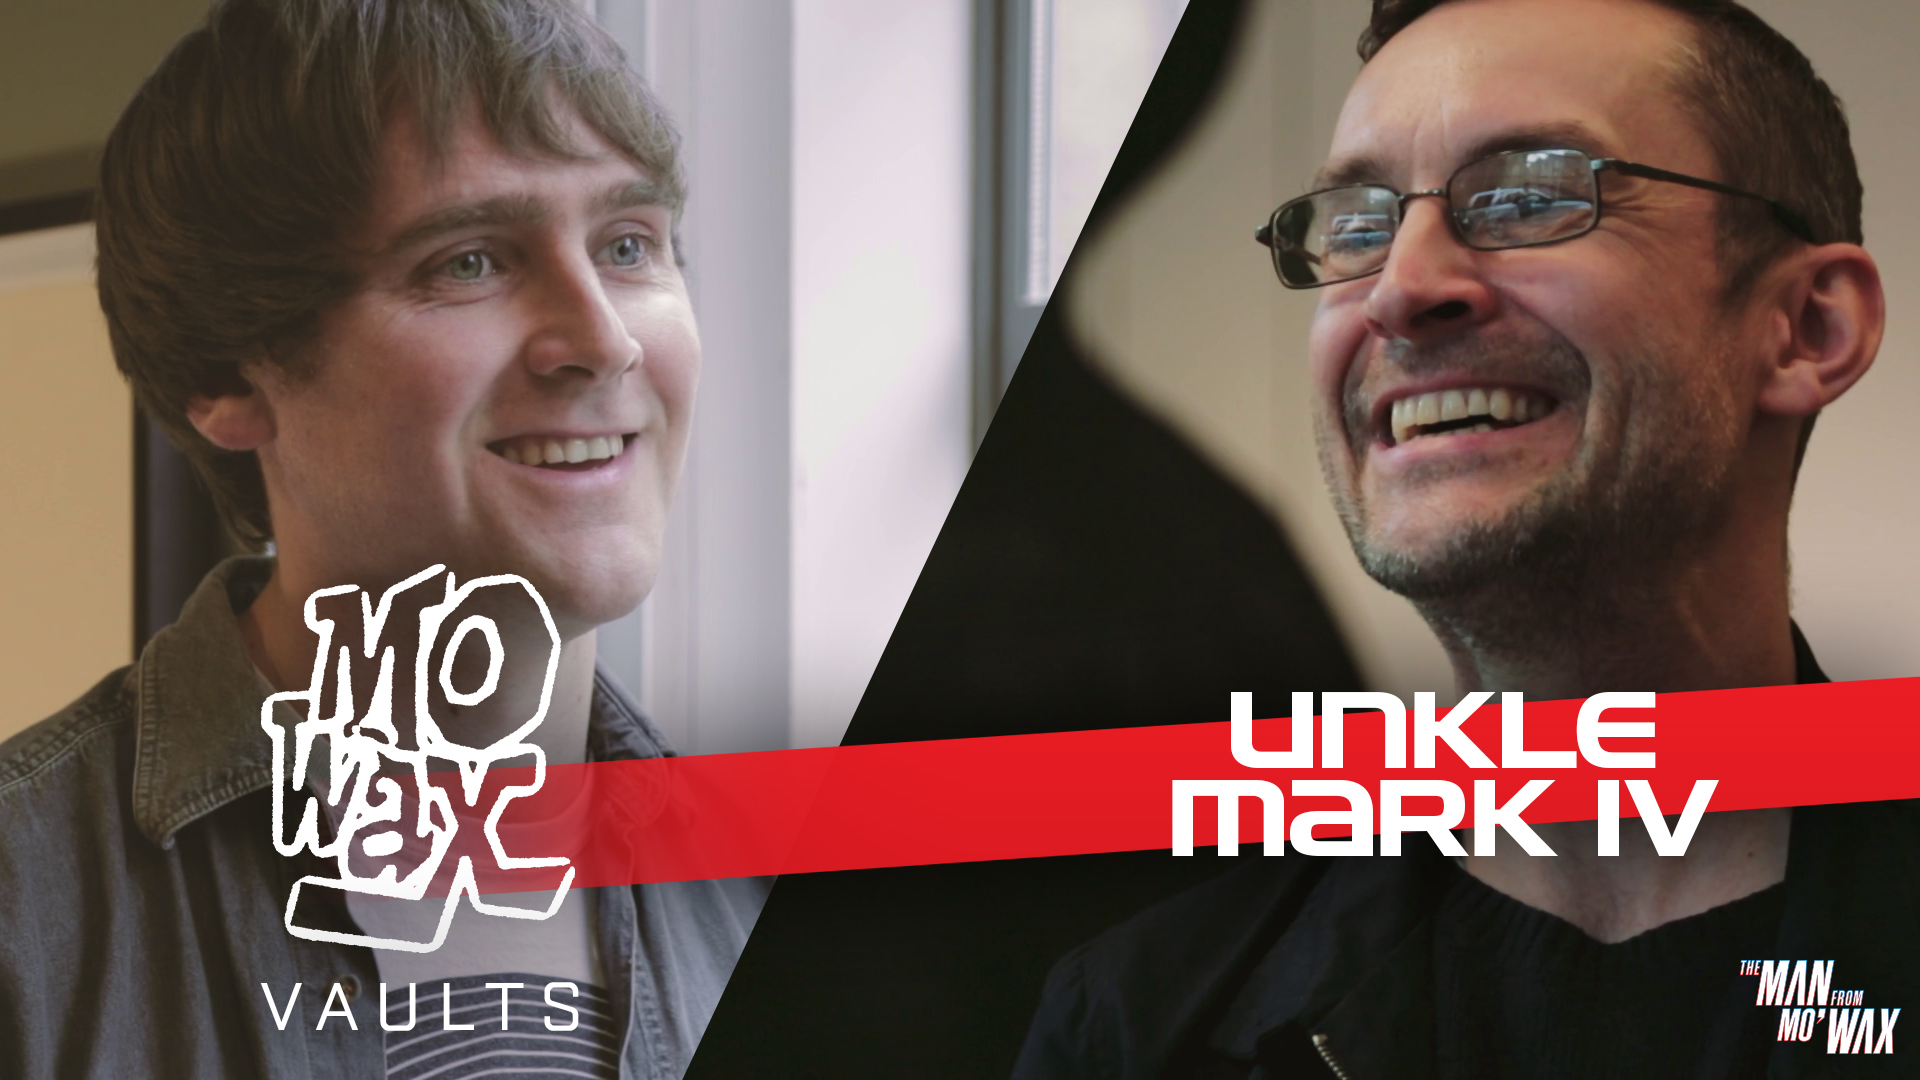 UNKLE Mark IV (2018, 16 mins)  Matt Puffett & Jack Leonard, key collaborators on UNKLE album The Road discuss their latest incarnation of UNKLE and working with James Lavelle